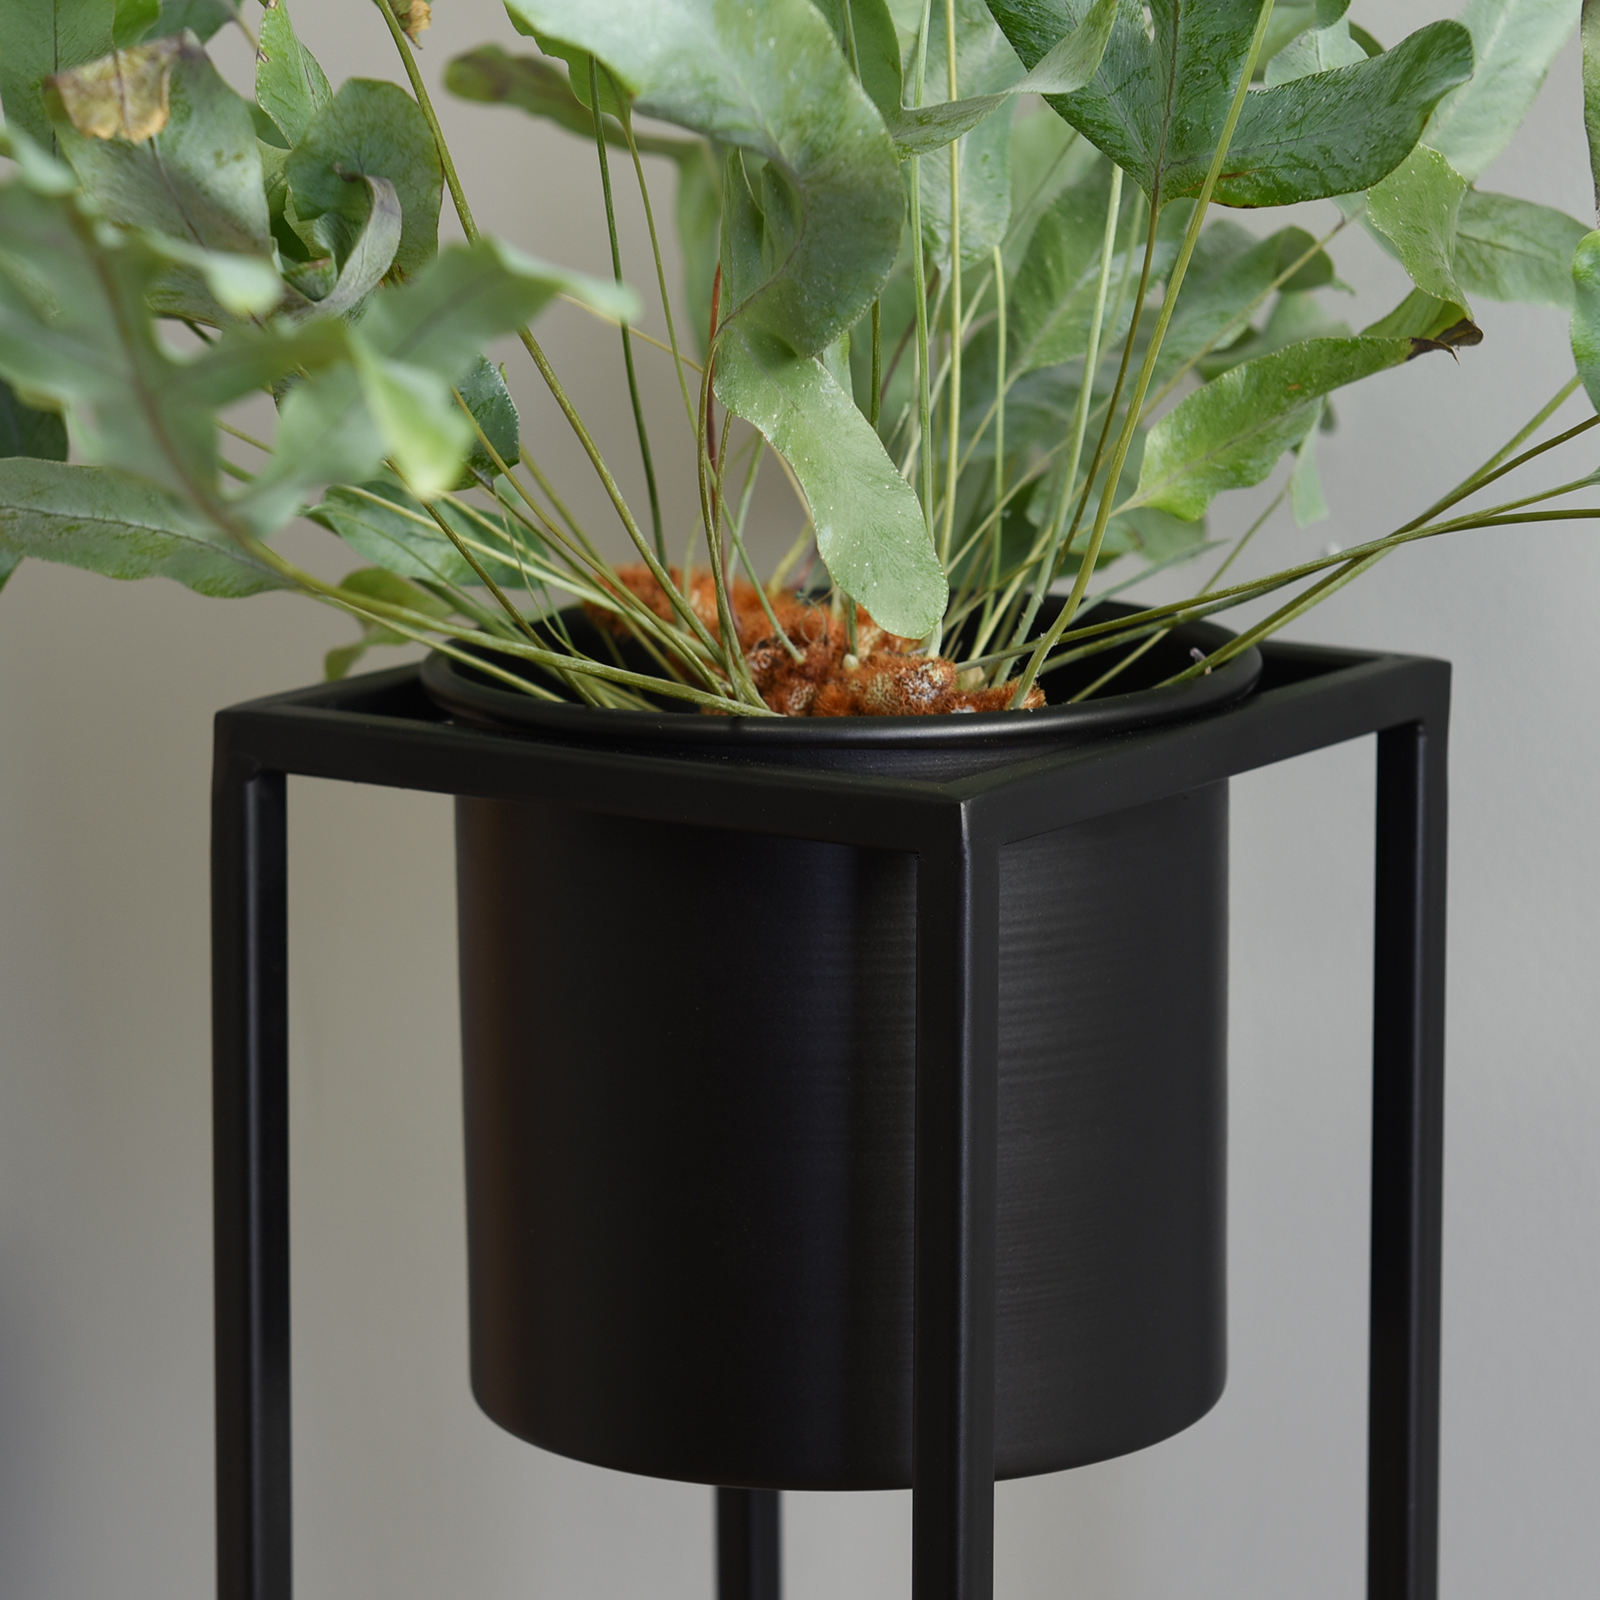 Hartleys-Small-Round-Freestanding-Black-Metal-Plant-Pot-Tall-Square-Floor-Stand thumbnail 18